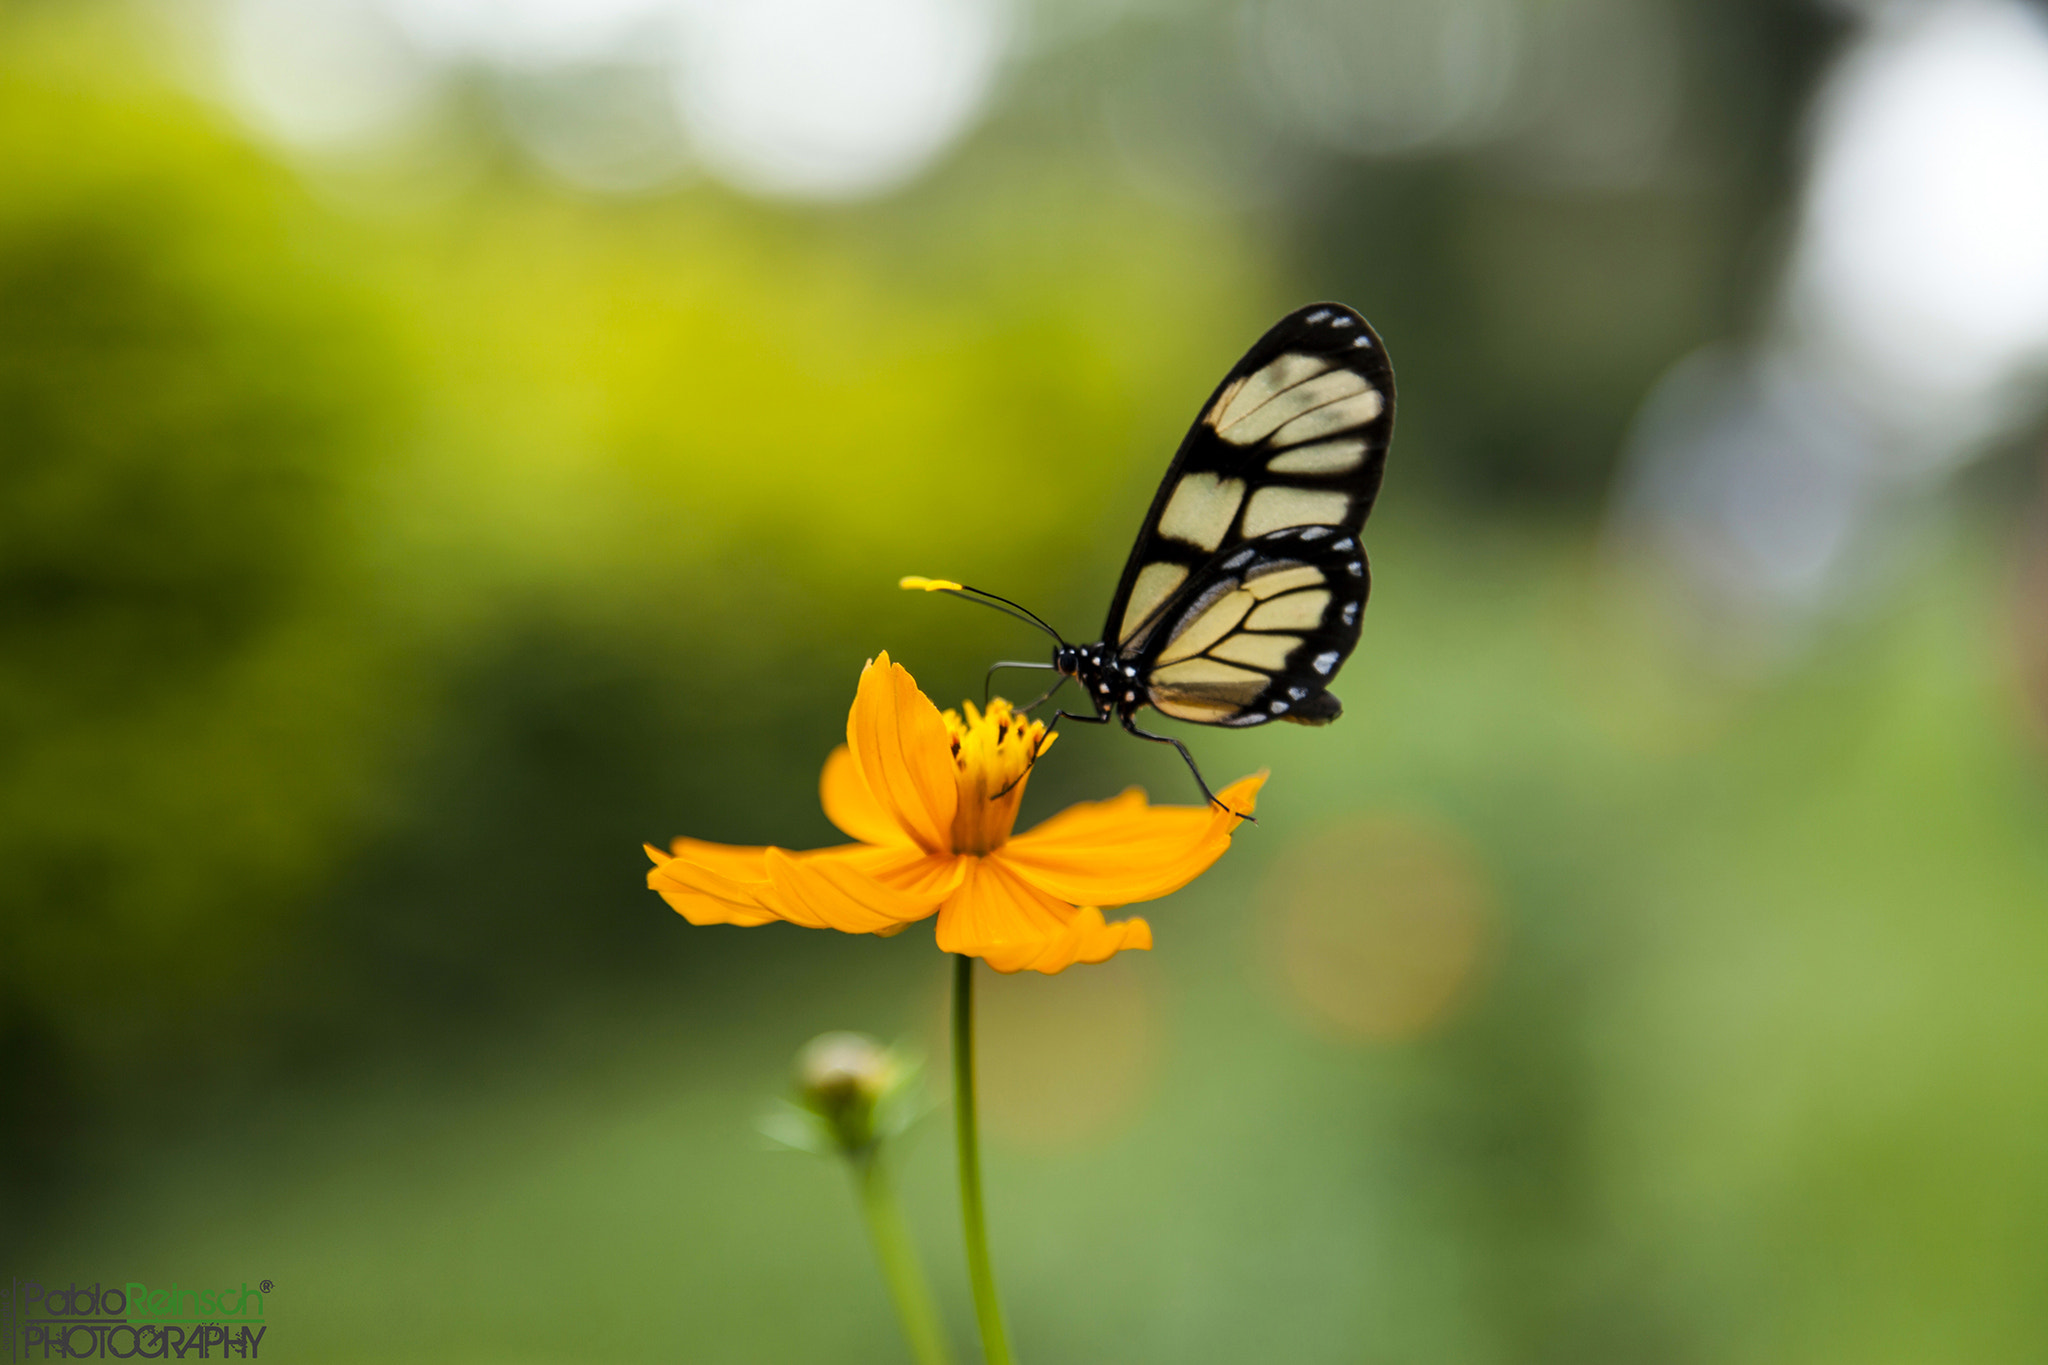 Photograph Mariposa.- by Pablo Reinsch on 500px